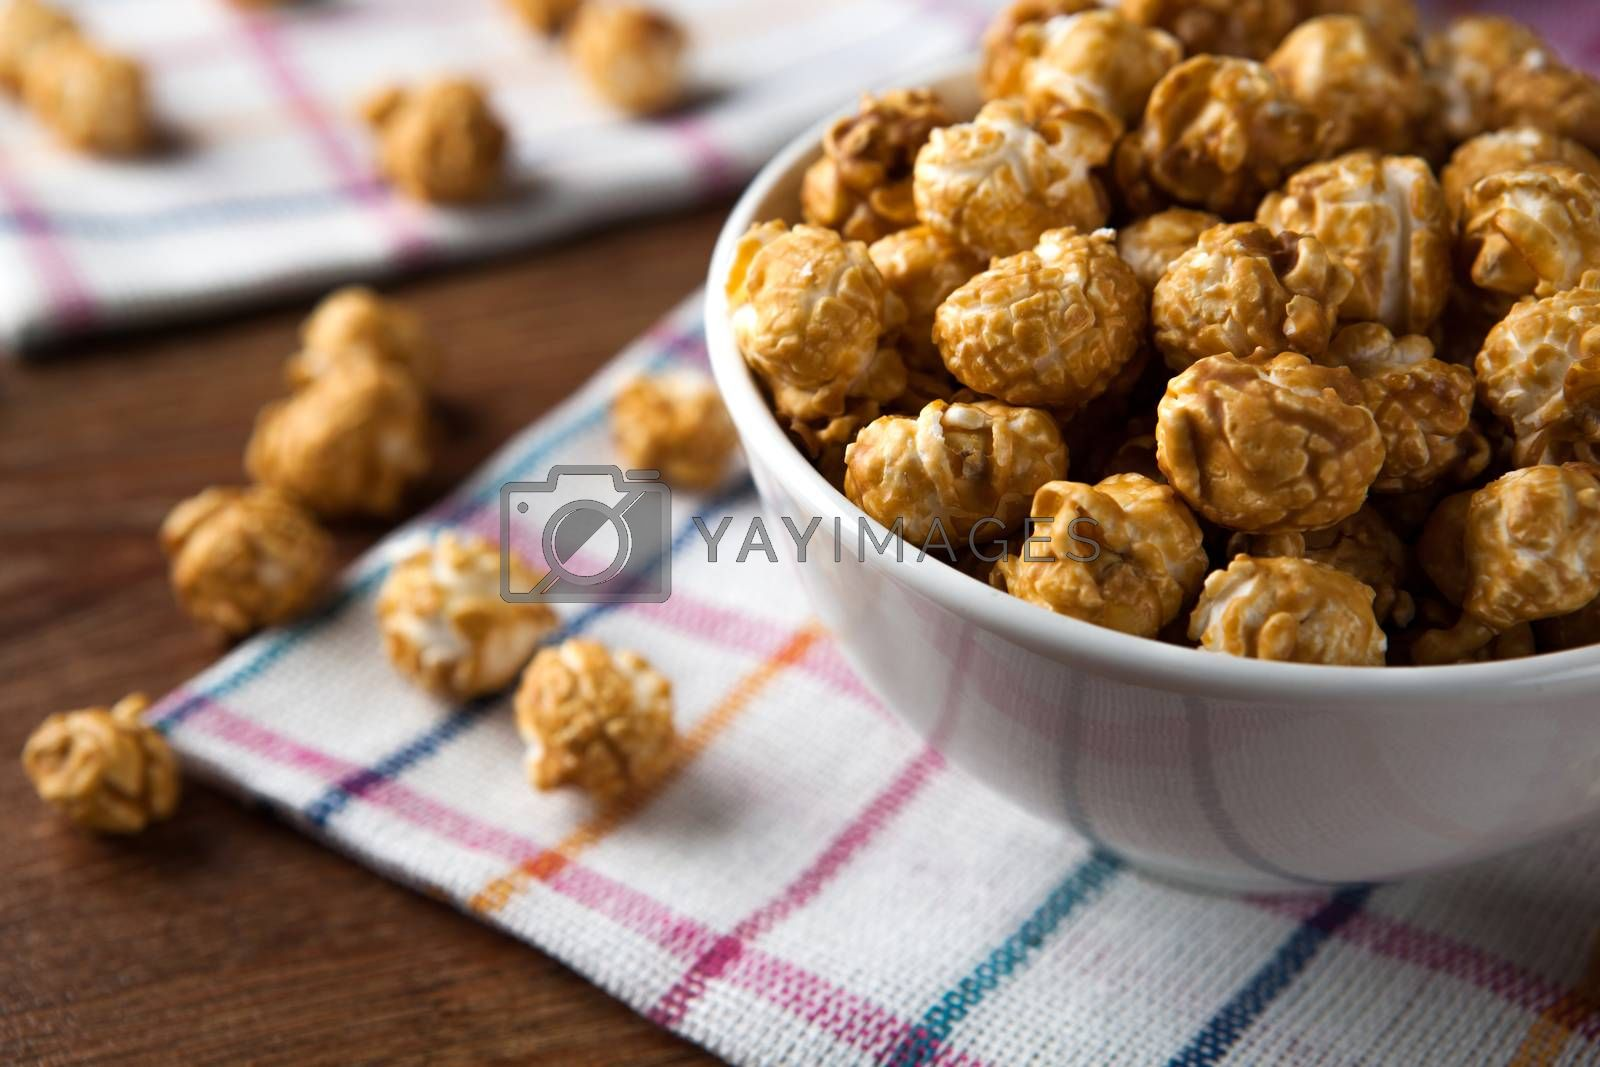 Royalty free image of a lot of golden caramel corn by mizar_21984